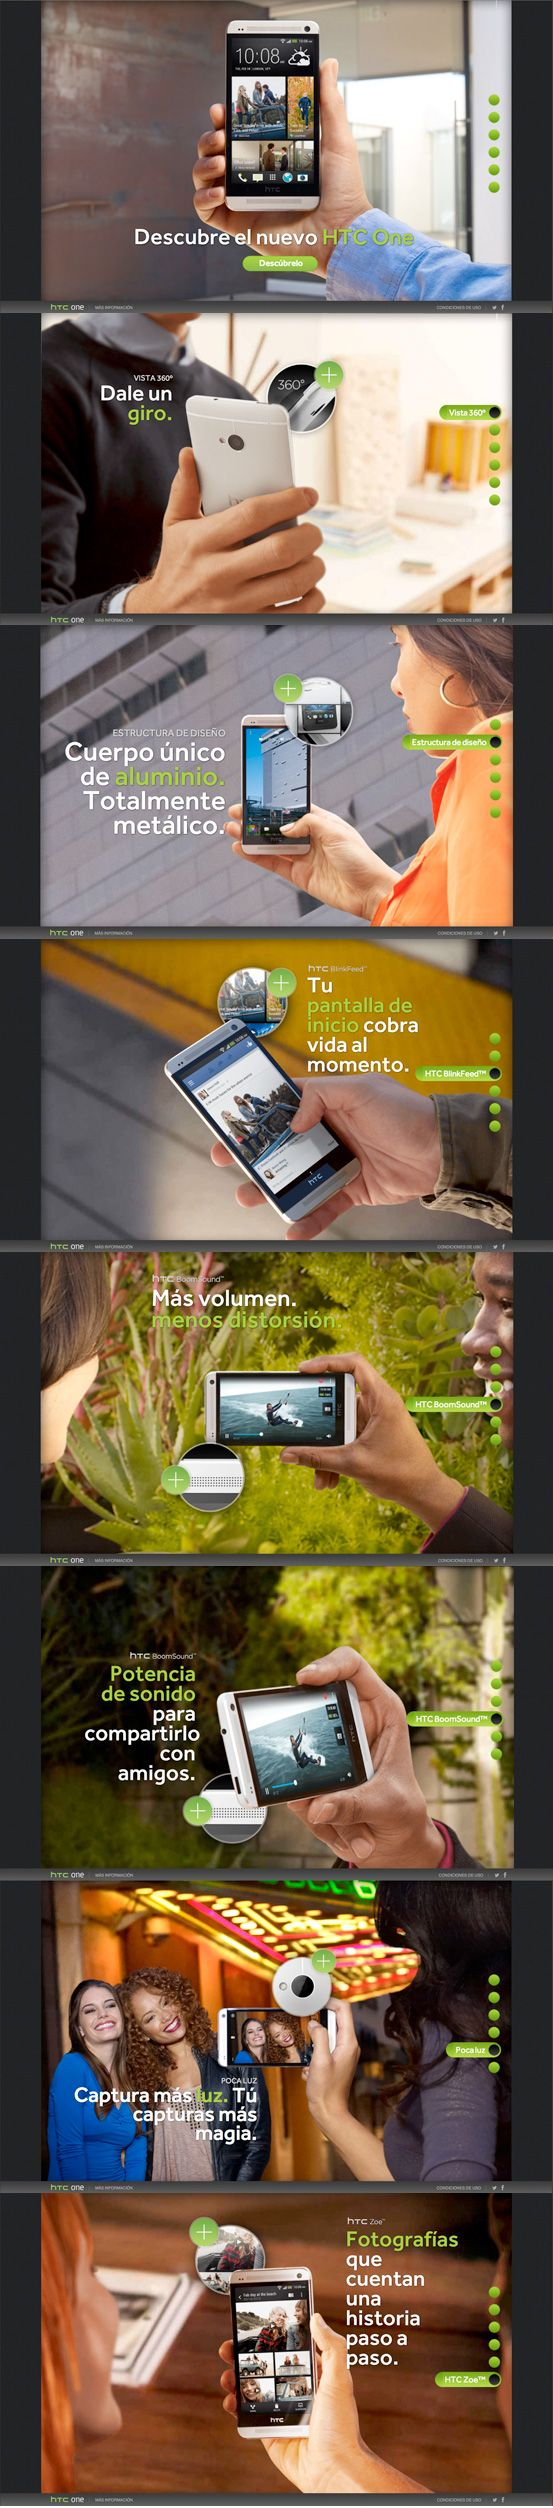 Experience the new HTC One #webdesign #inspiration #UI #Big Background Images #Infinite Scroll #HTML5 #Unusual Navigation #Design #Parallax #Black #White #Green